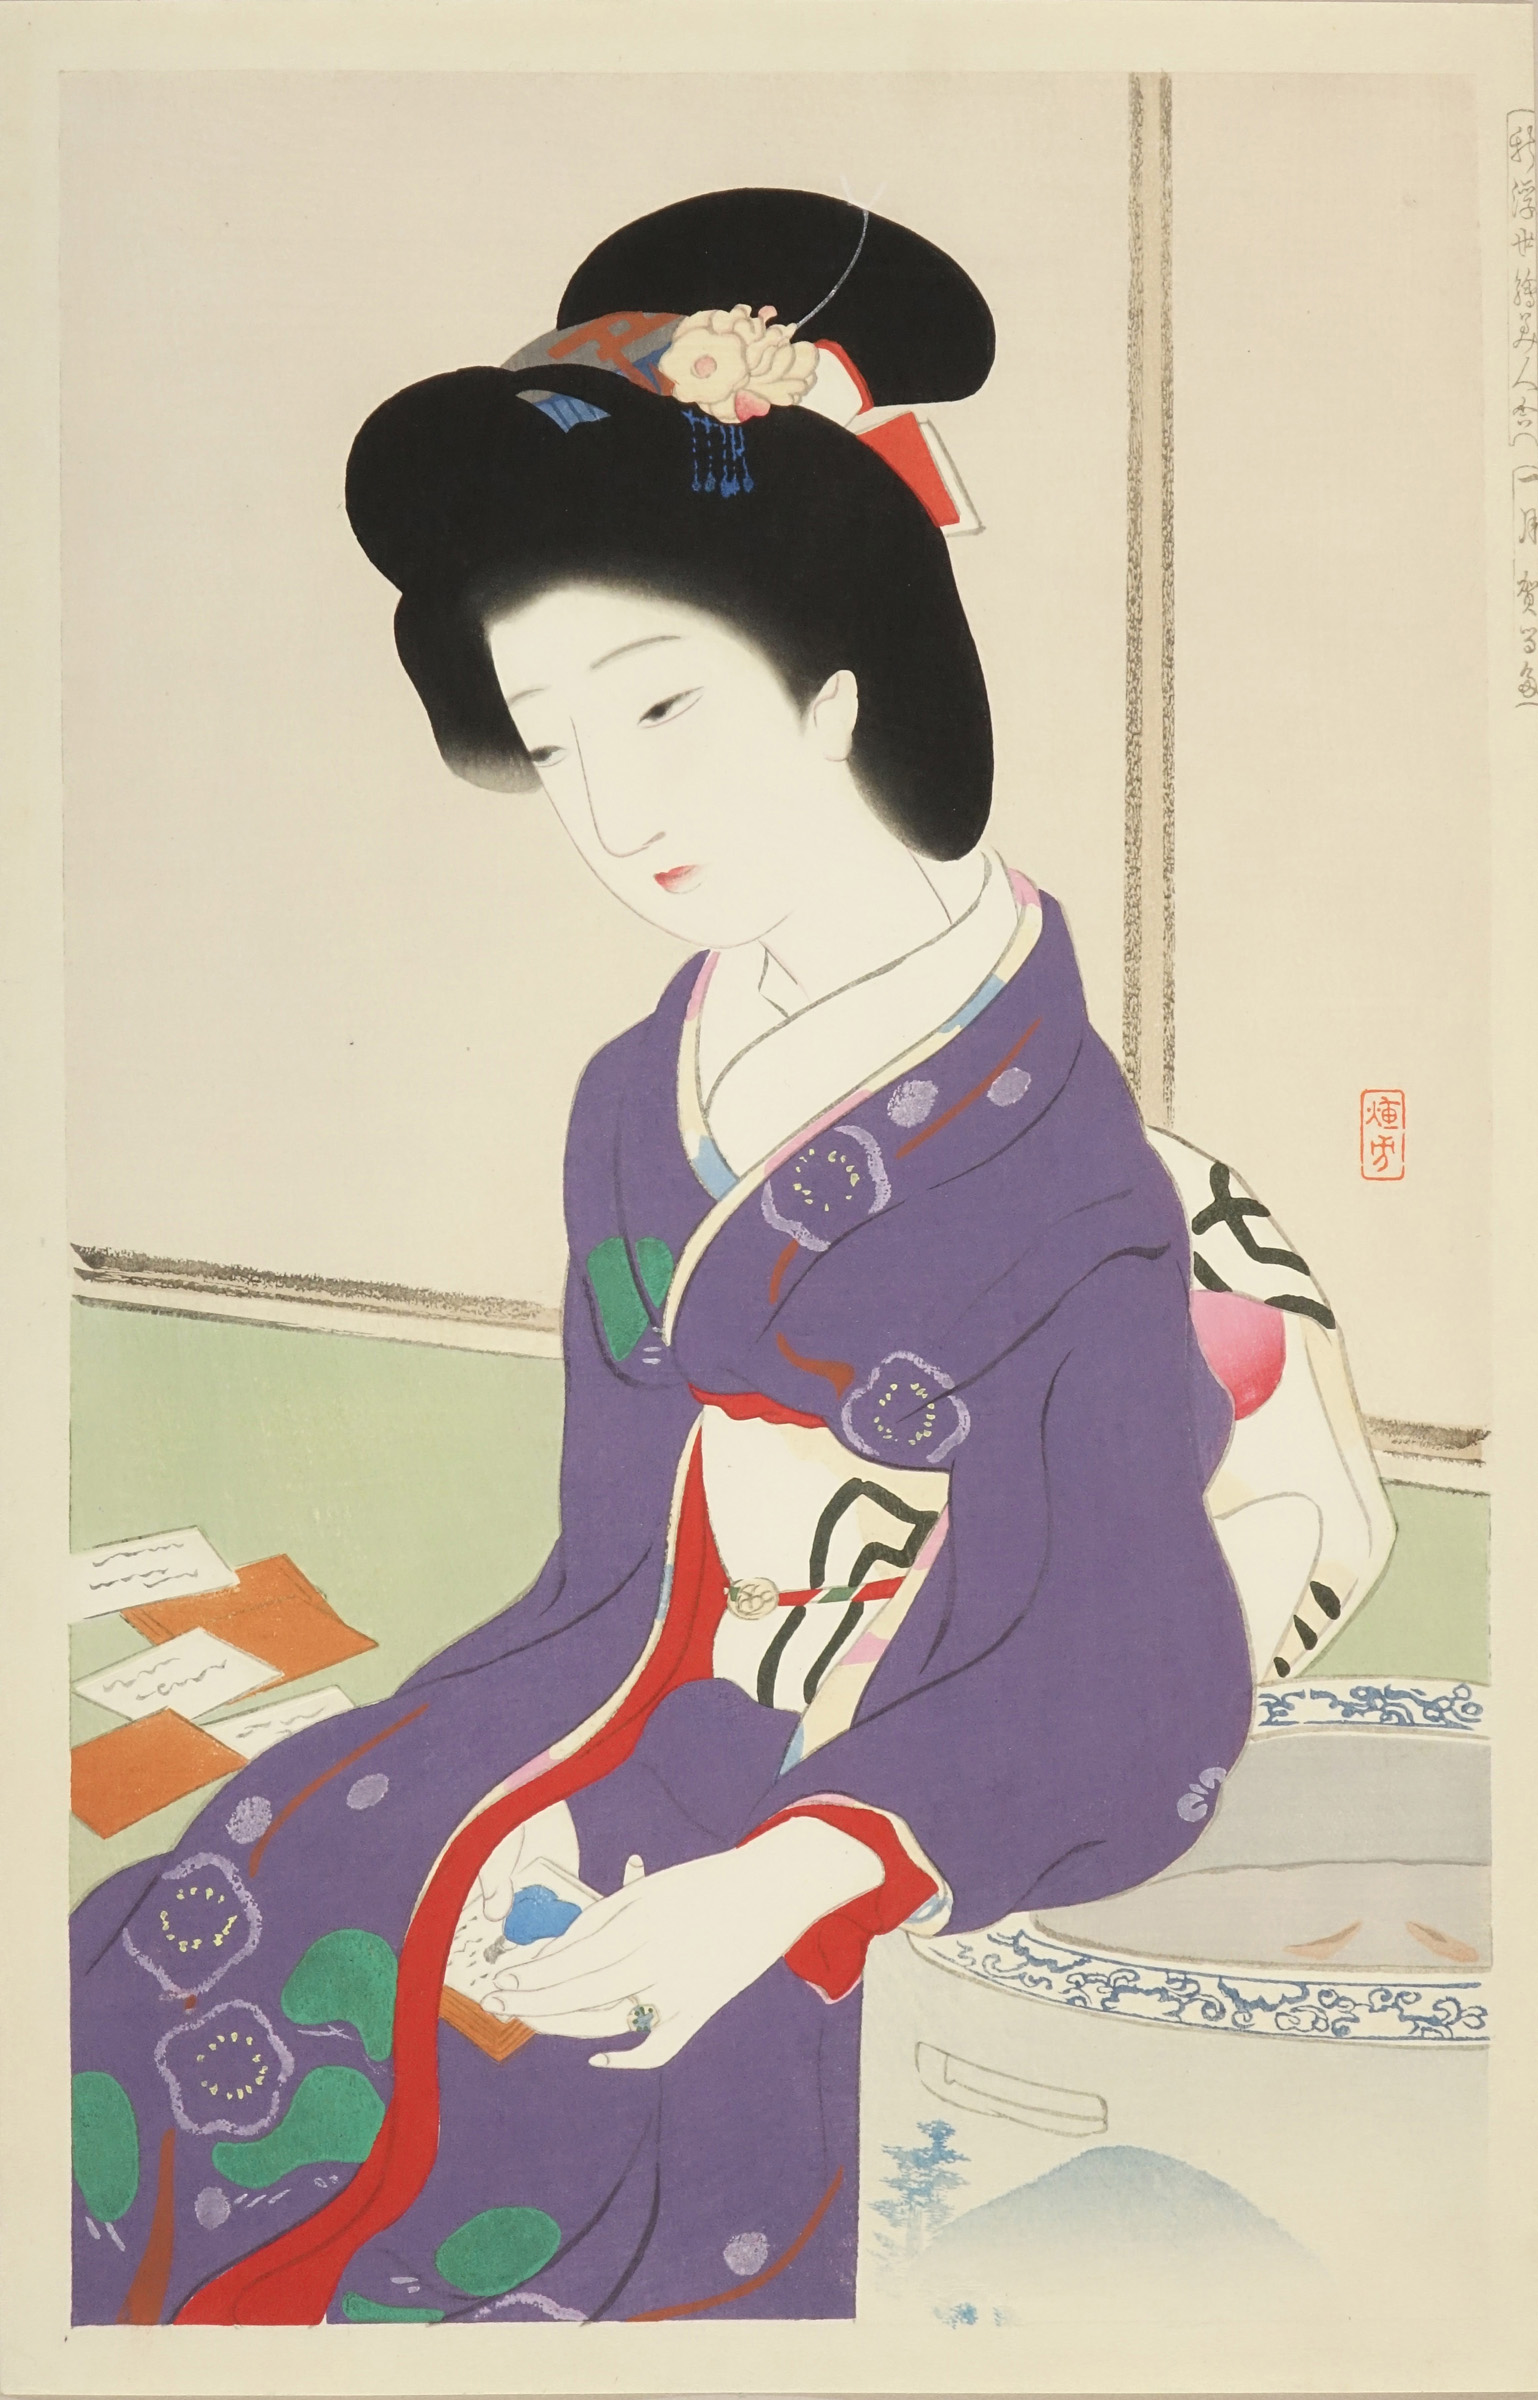 IKEDA TERUKATA A beauty holding a <i>karuta</i> (Playing card of one hundred poems by one hundred poets), first month, from <i>Shin ukiyo-e bijin awase</i> (Collection of new ukiyo-e beauties)